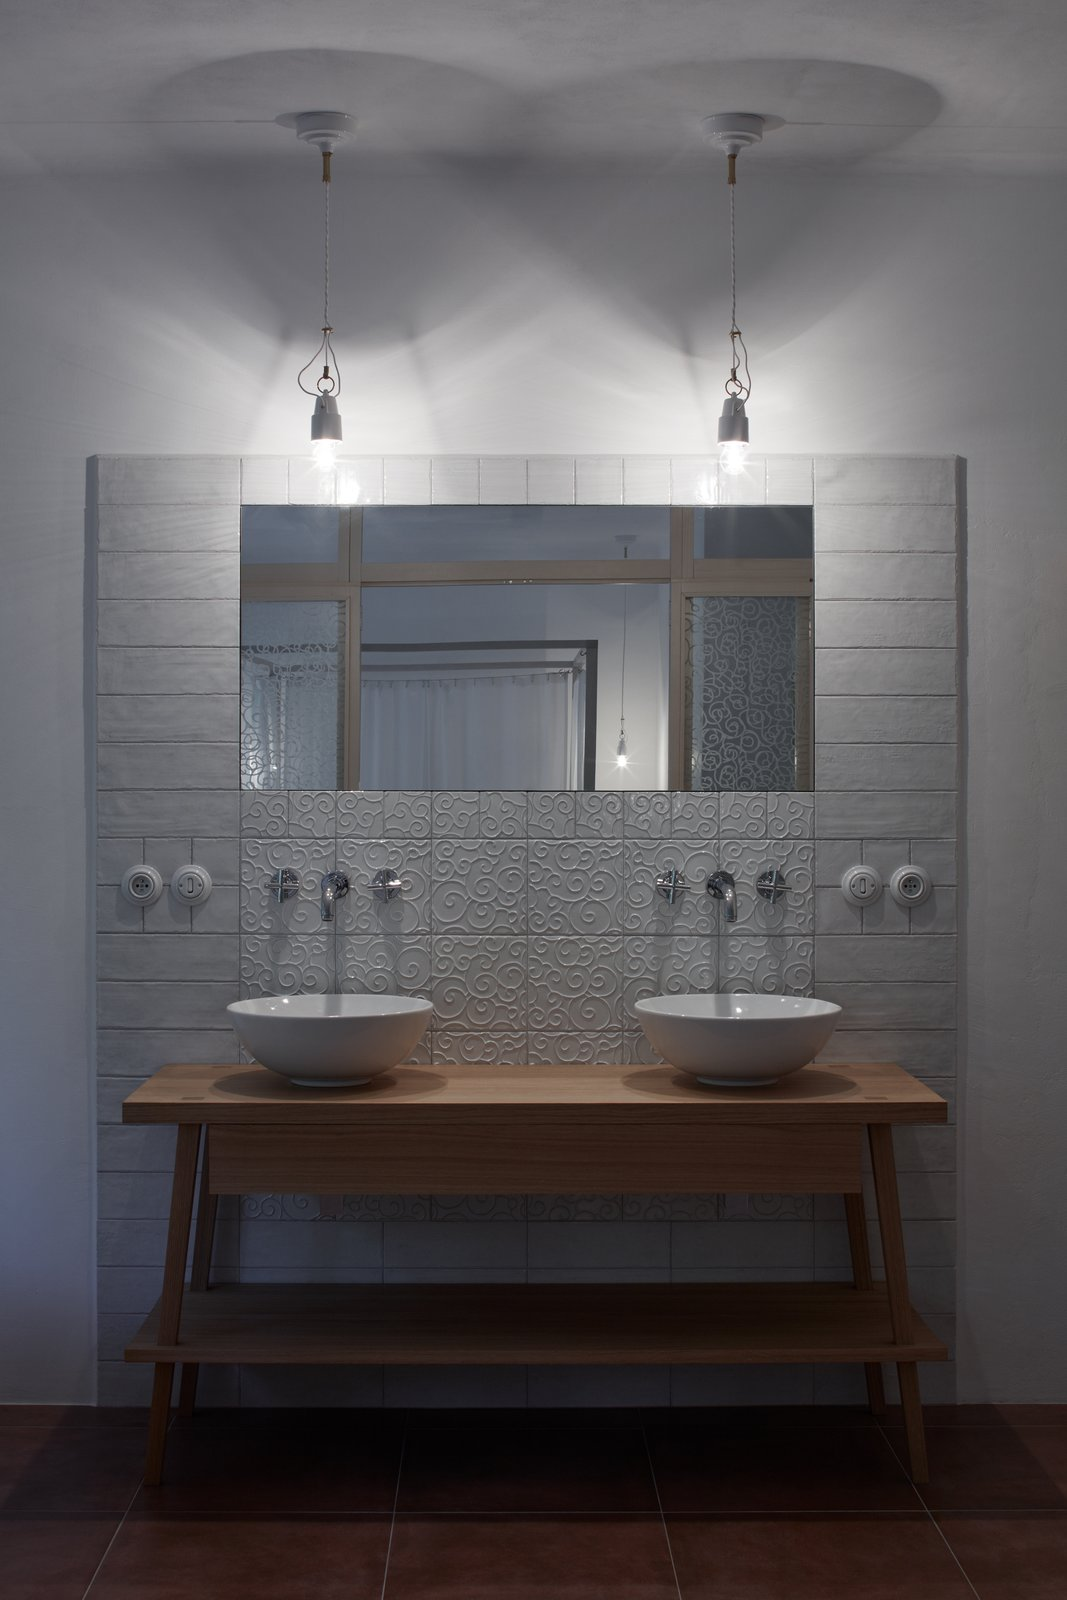 Bath Room, Wood Counter, Pendant Lighting, Vessel Sink, Subway Tile Wall, and Terra-cotta Tile Floor  House by the Forrest by BoysPlayNice Photography & Concept